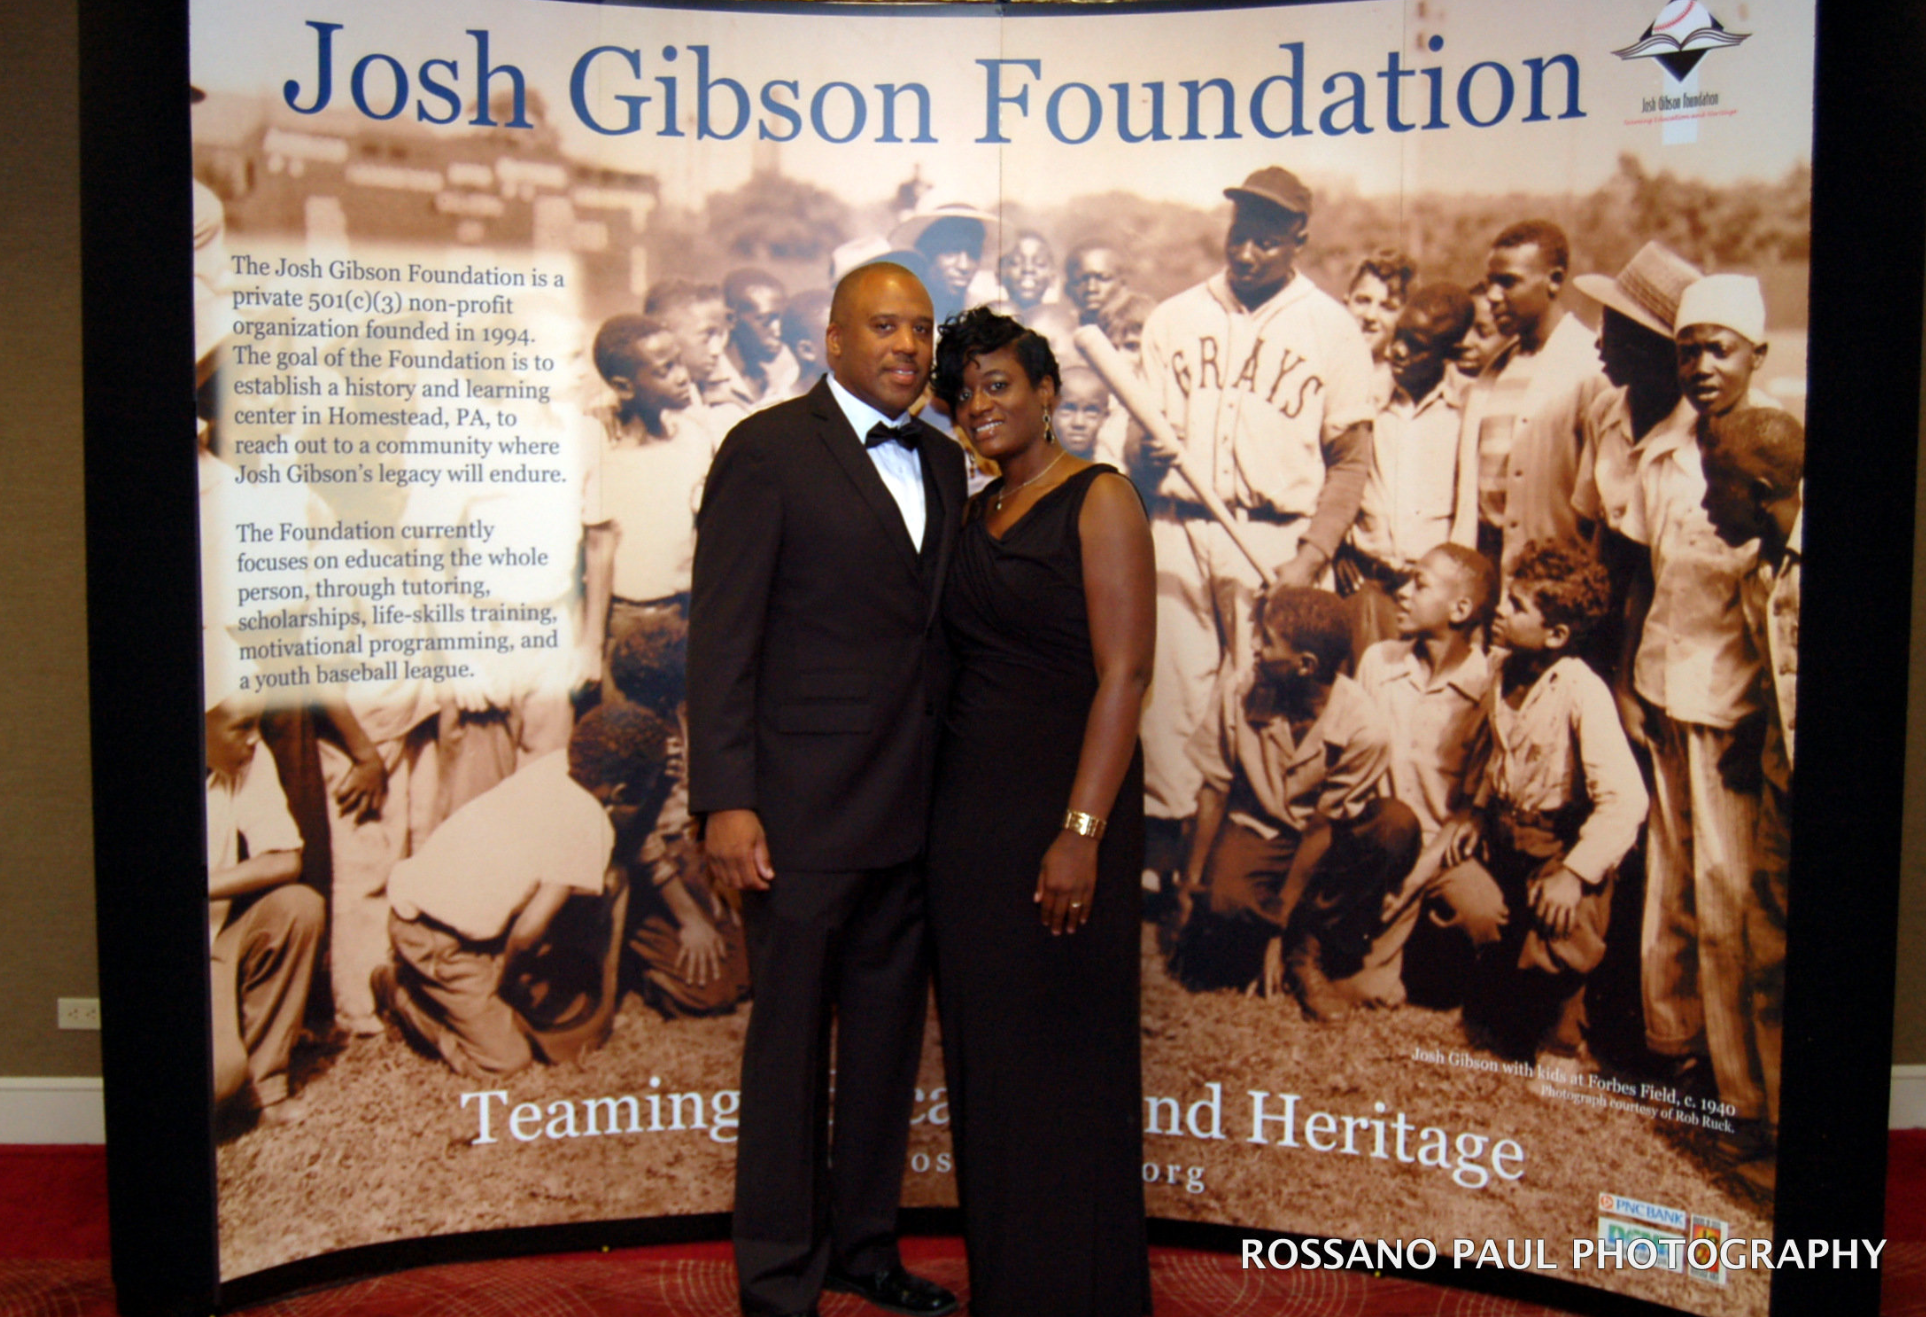 Sean Gibson, grandson of Josh Gibson